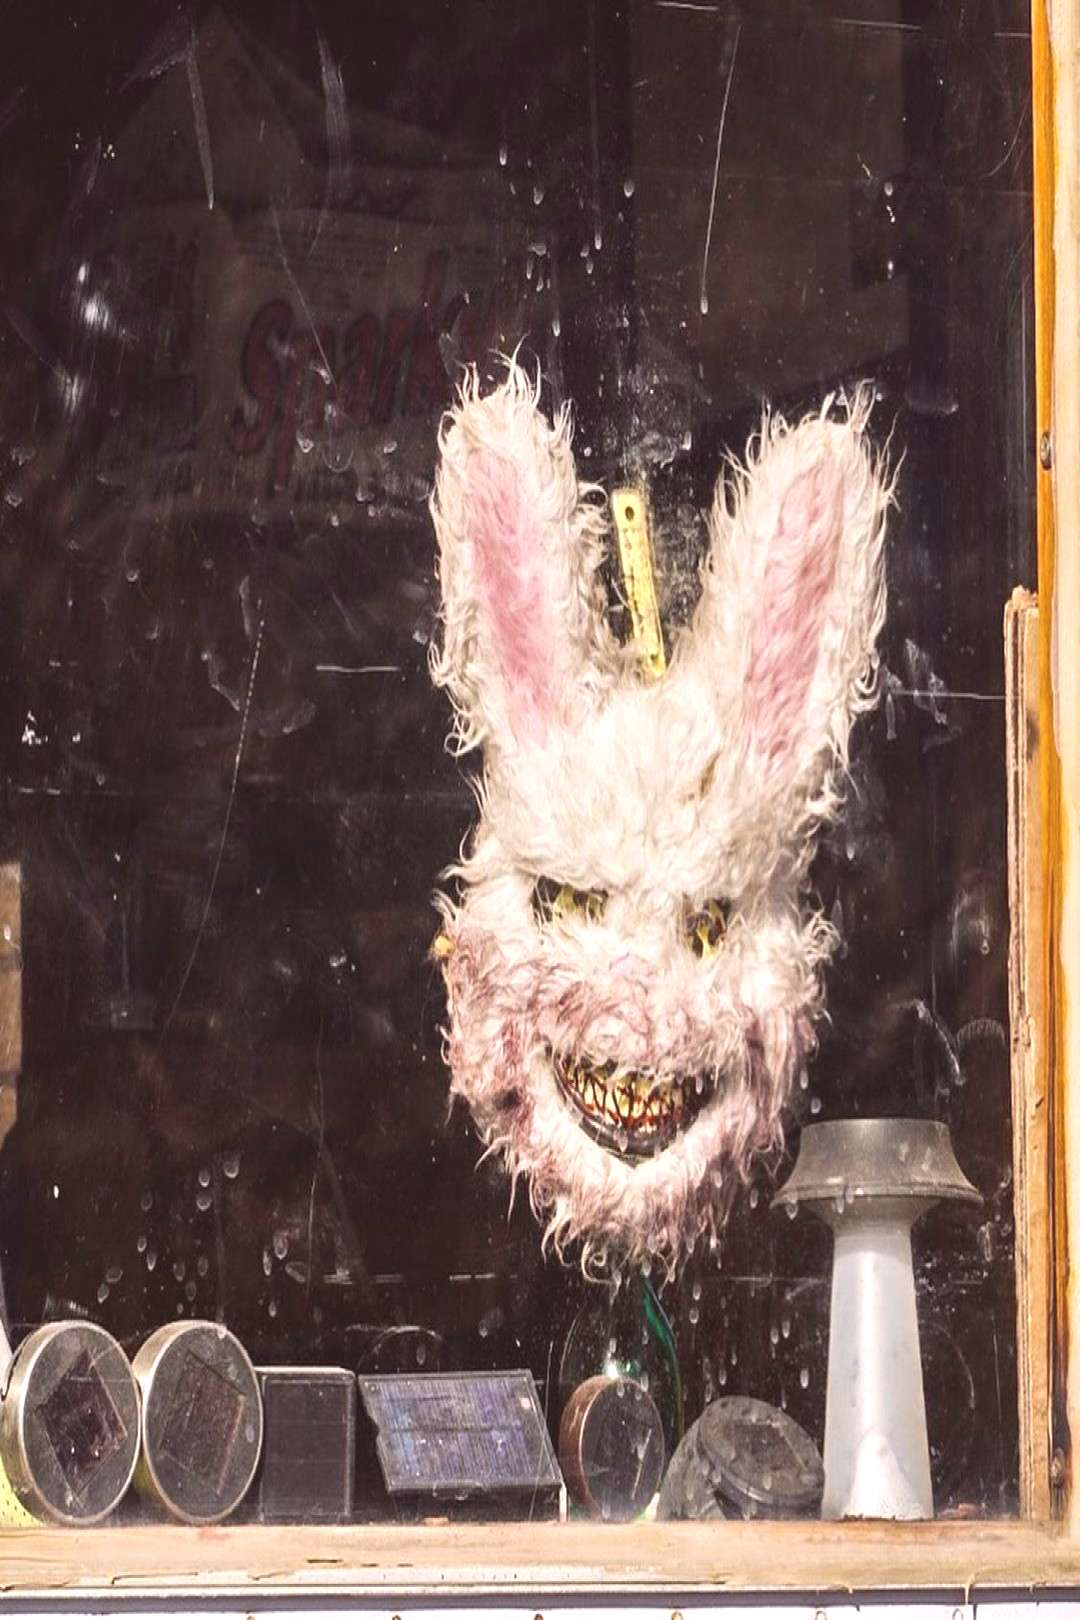 Just in time for Easter - - - - #easter #easterbunny #easterdecor